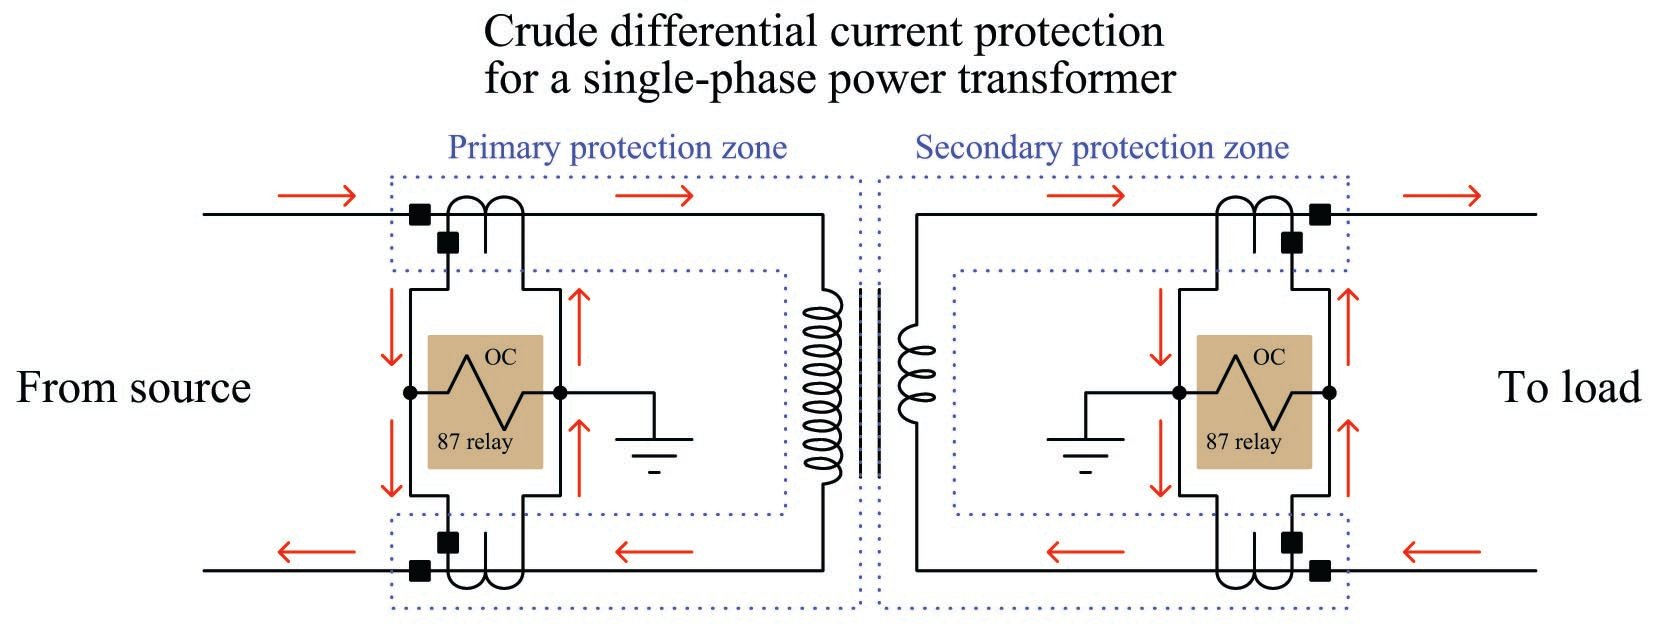 Differential 87 Current Protection Electric Power Measurement And Control Systems Automation Textbook